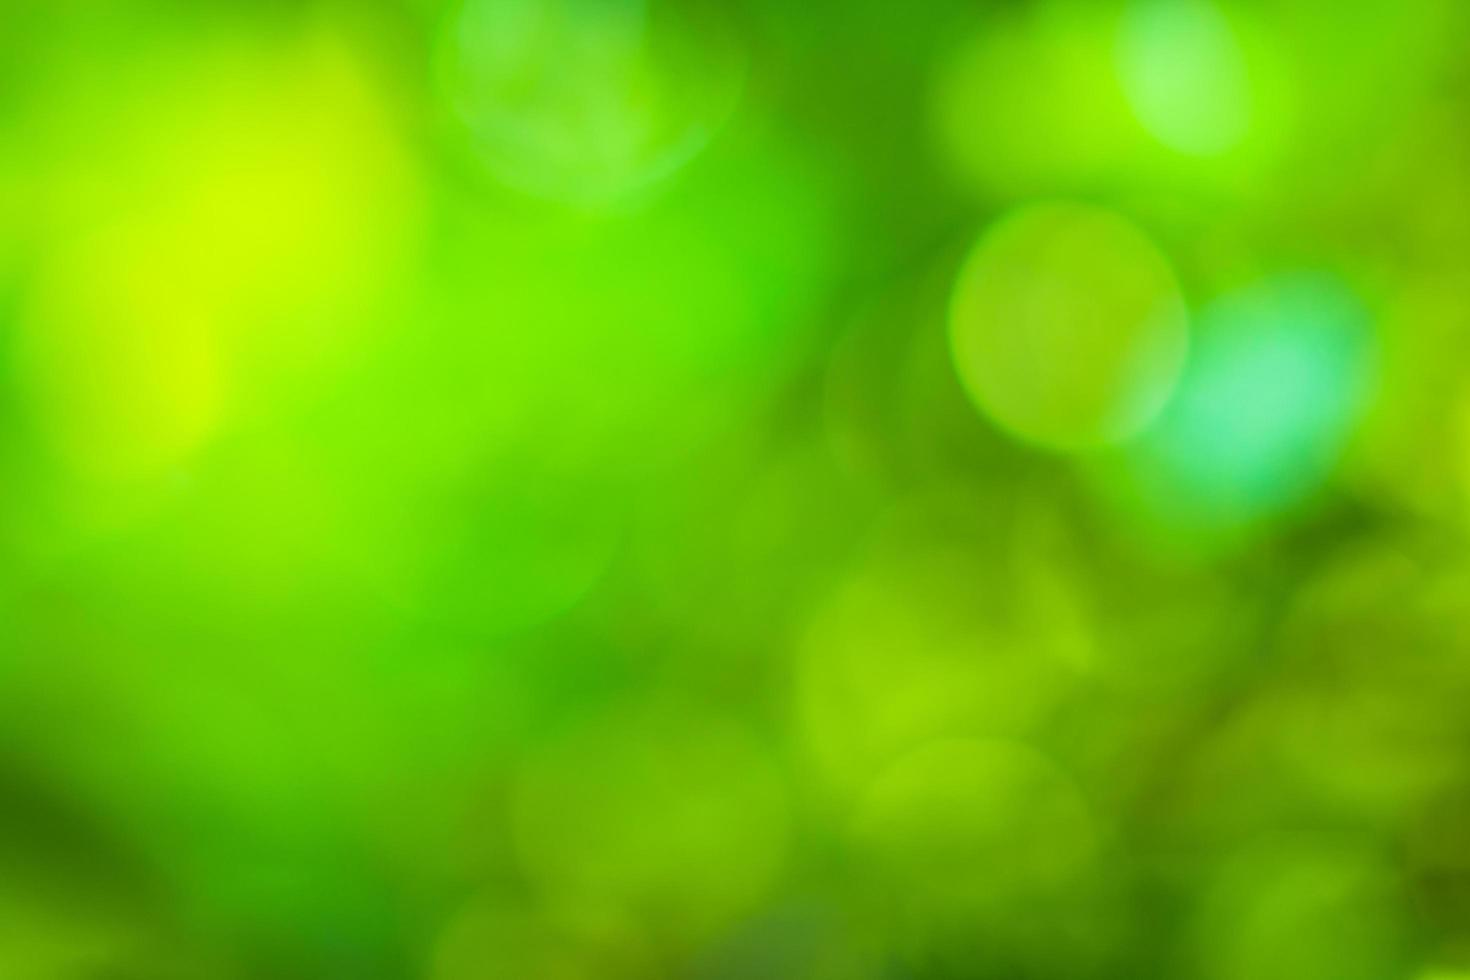 Natural bokeh background photo